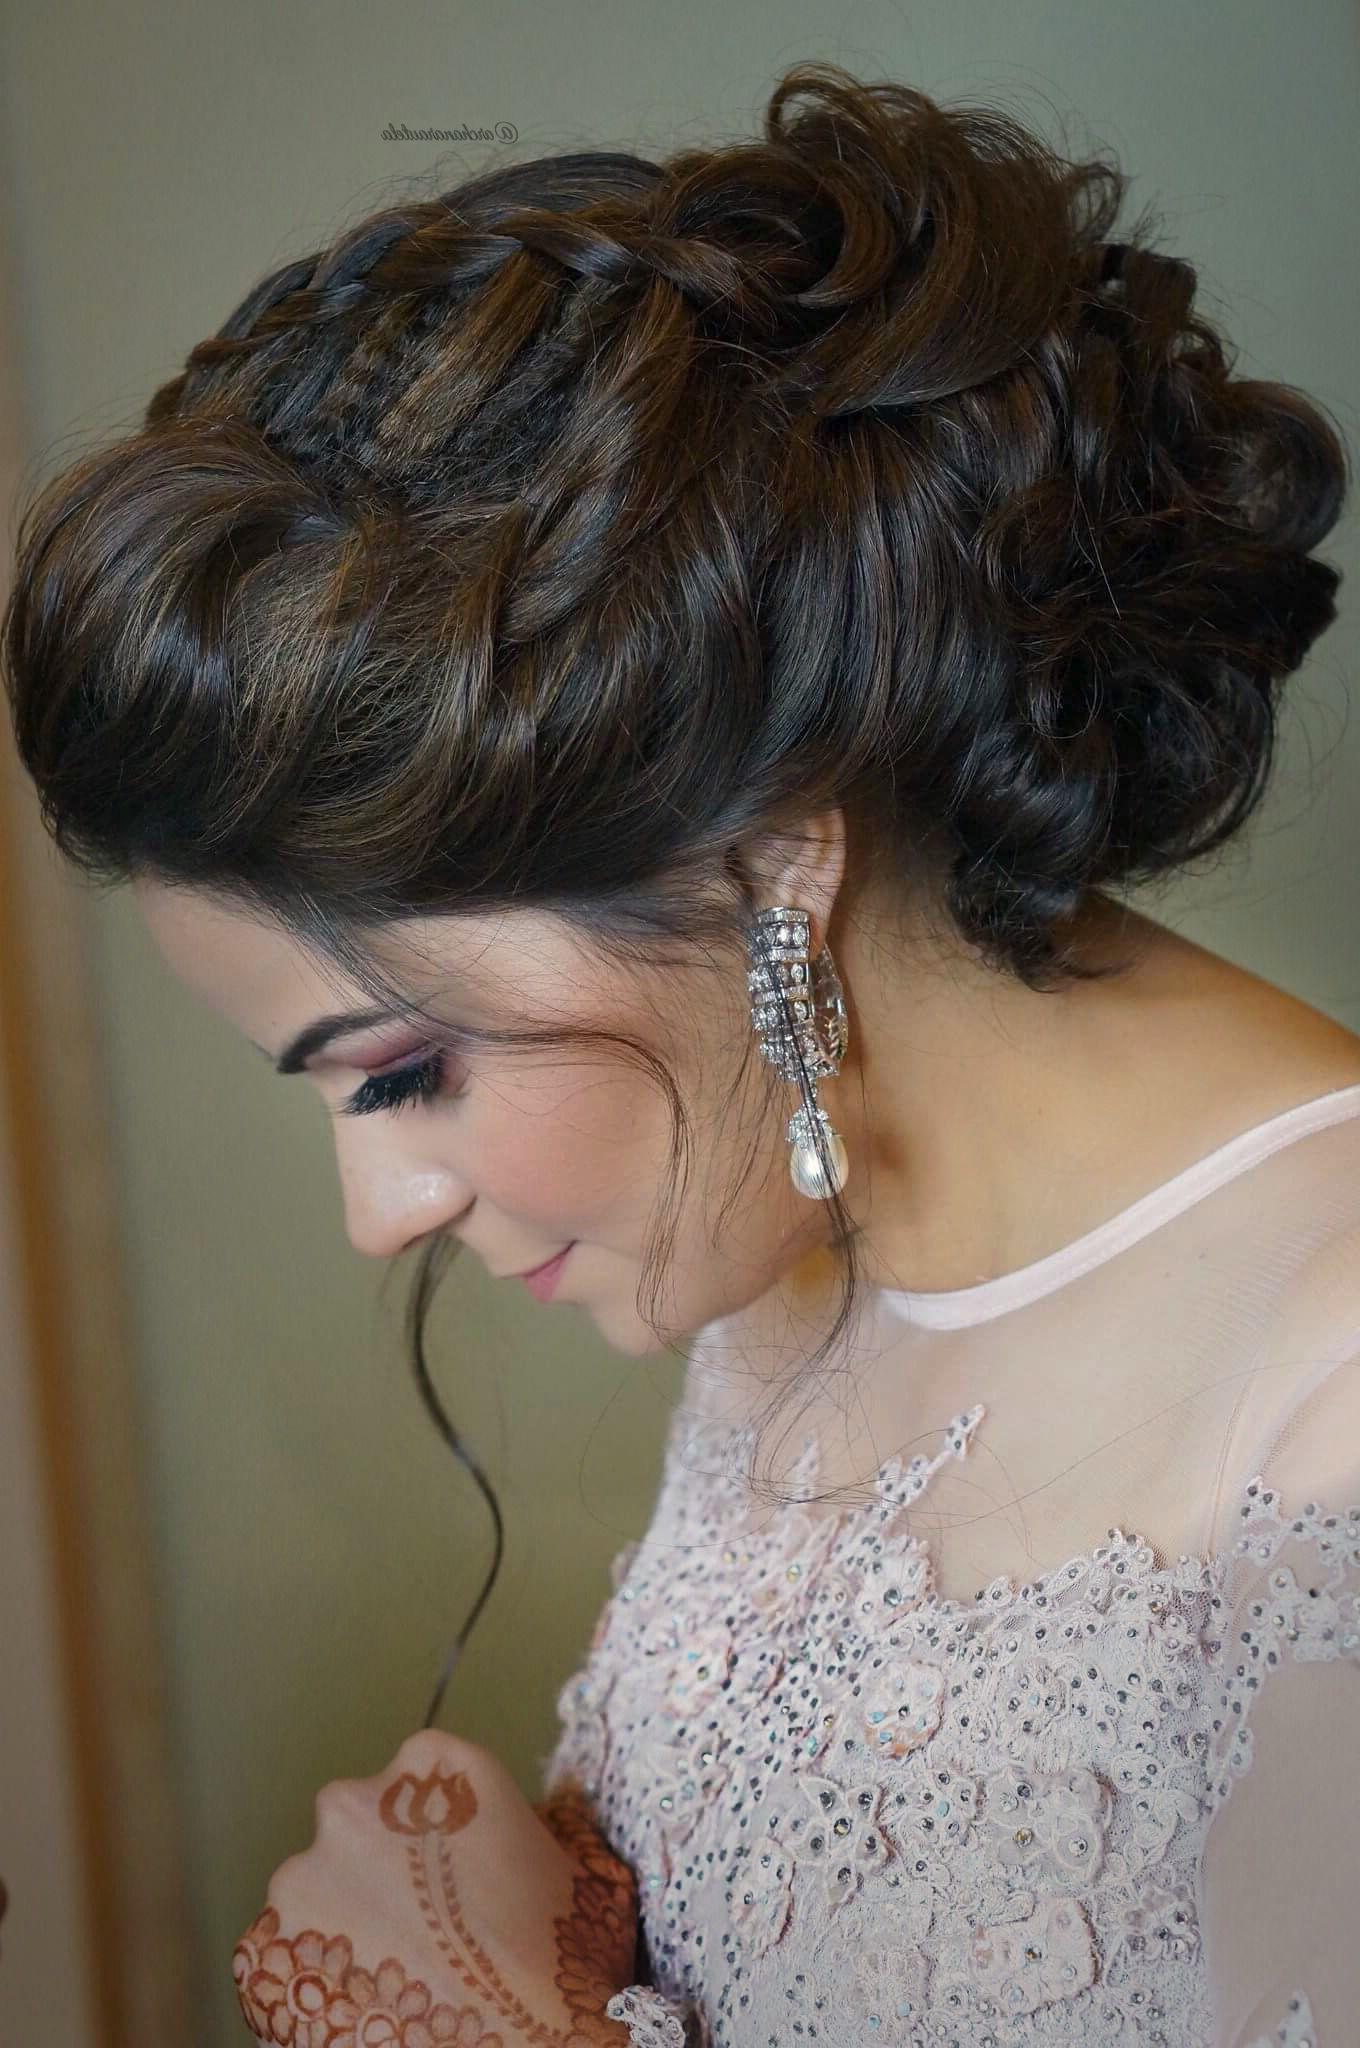 Nidhi👰🏼💍 Looking Gorgeous With Braided Messy Bun 💍💄 Hair Pertaining To Well Liked Side Bun Prom Hairstyles With Black Feathers (View 13 of 20)